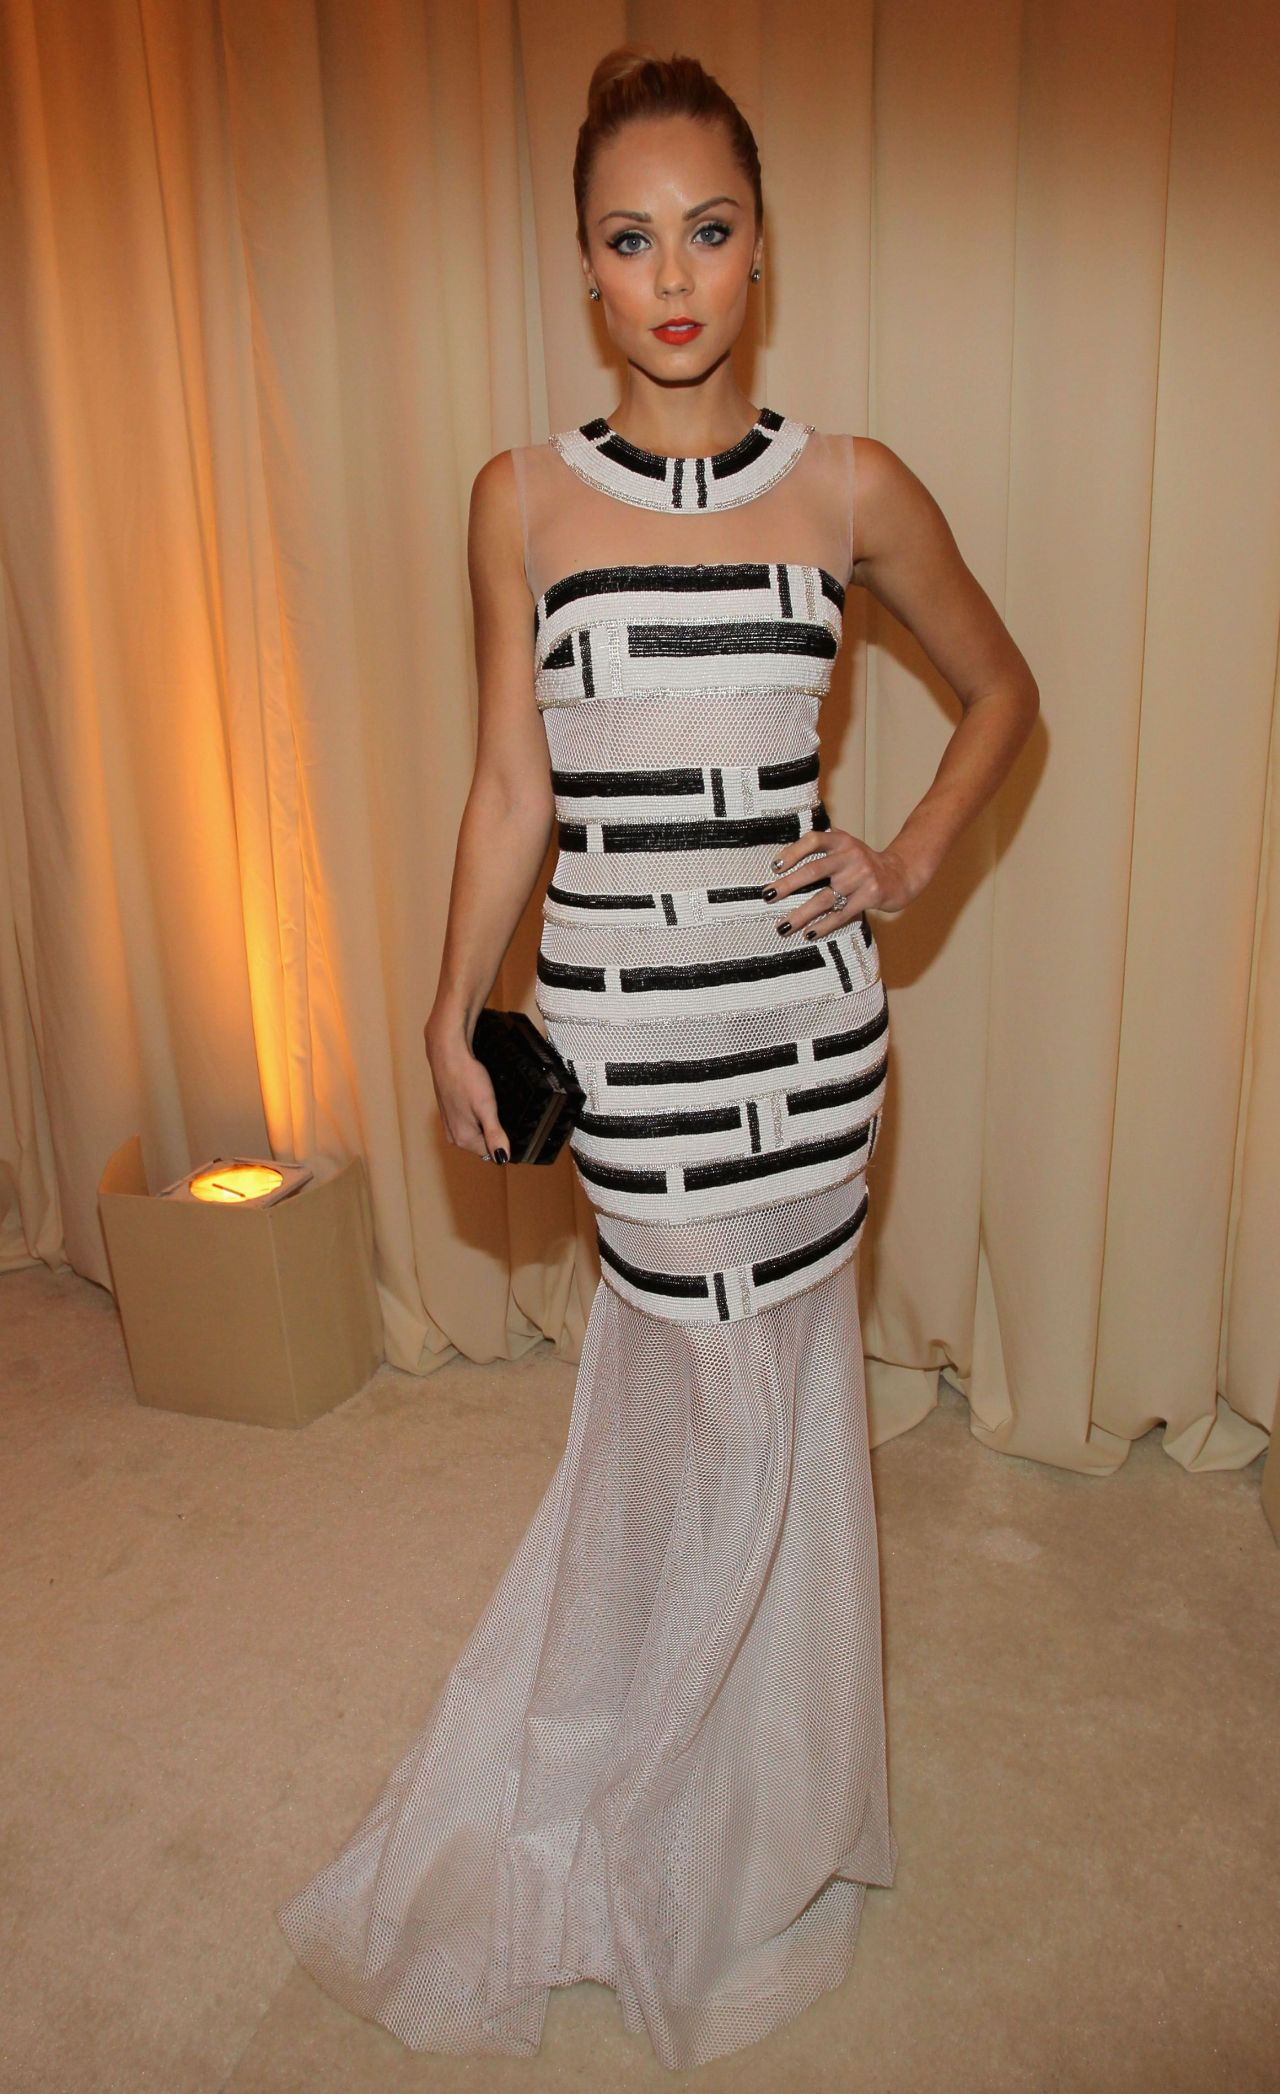 Laura Vandervoort in Carmen Marc Valvo Black and White Fish Tail Gown - 2014 Elton John Oscar Party